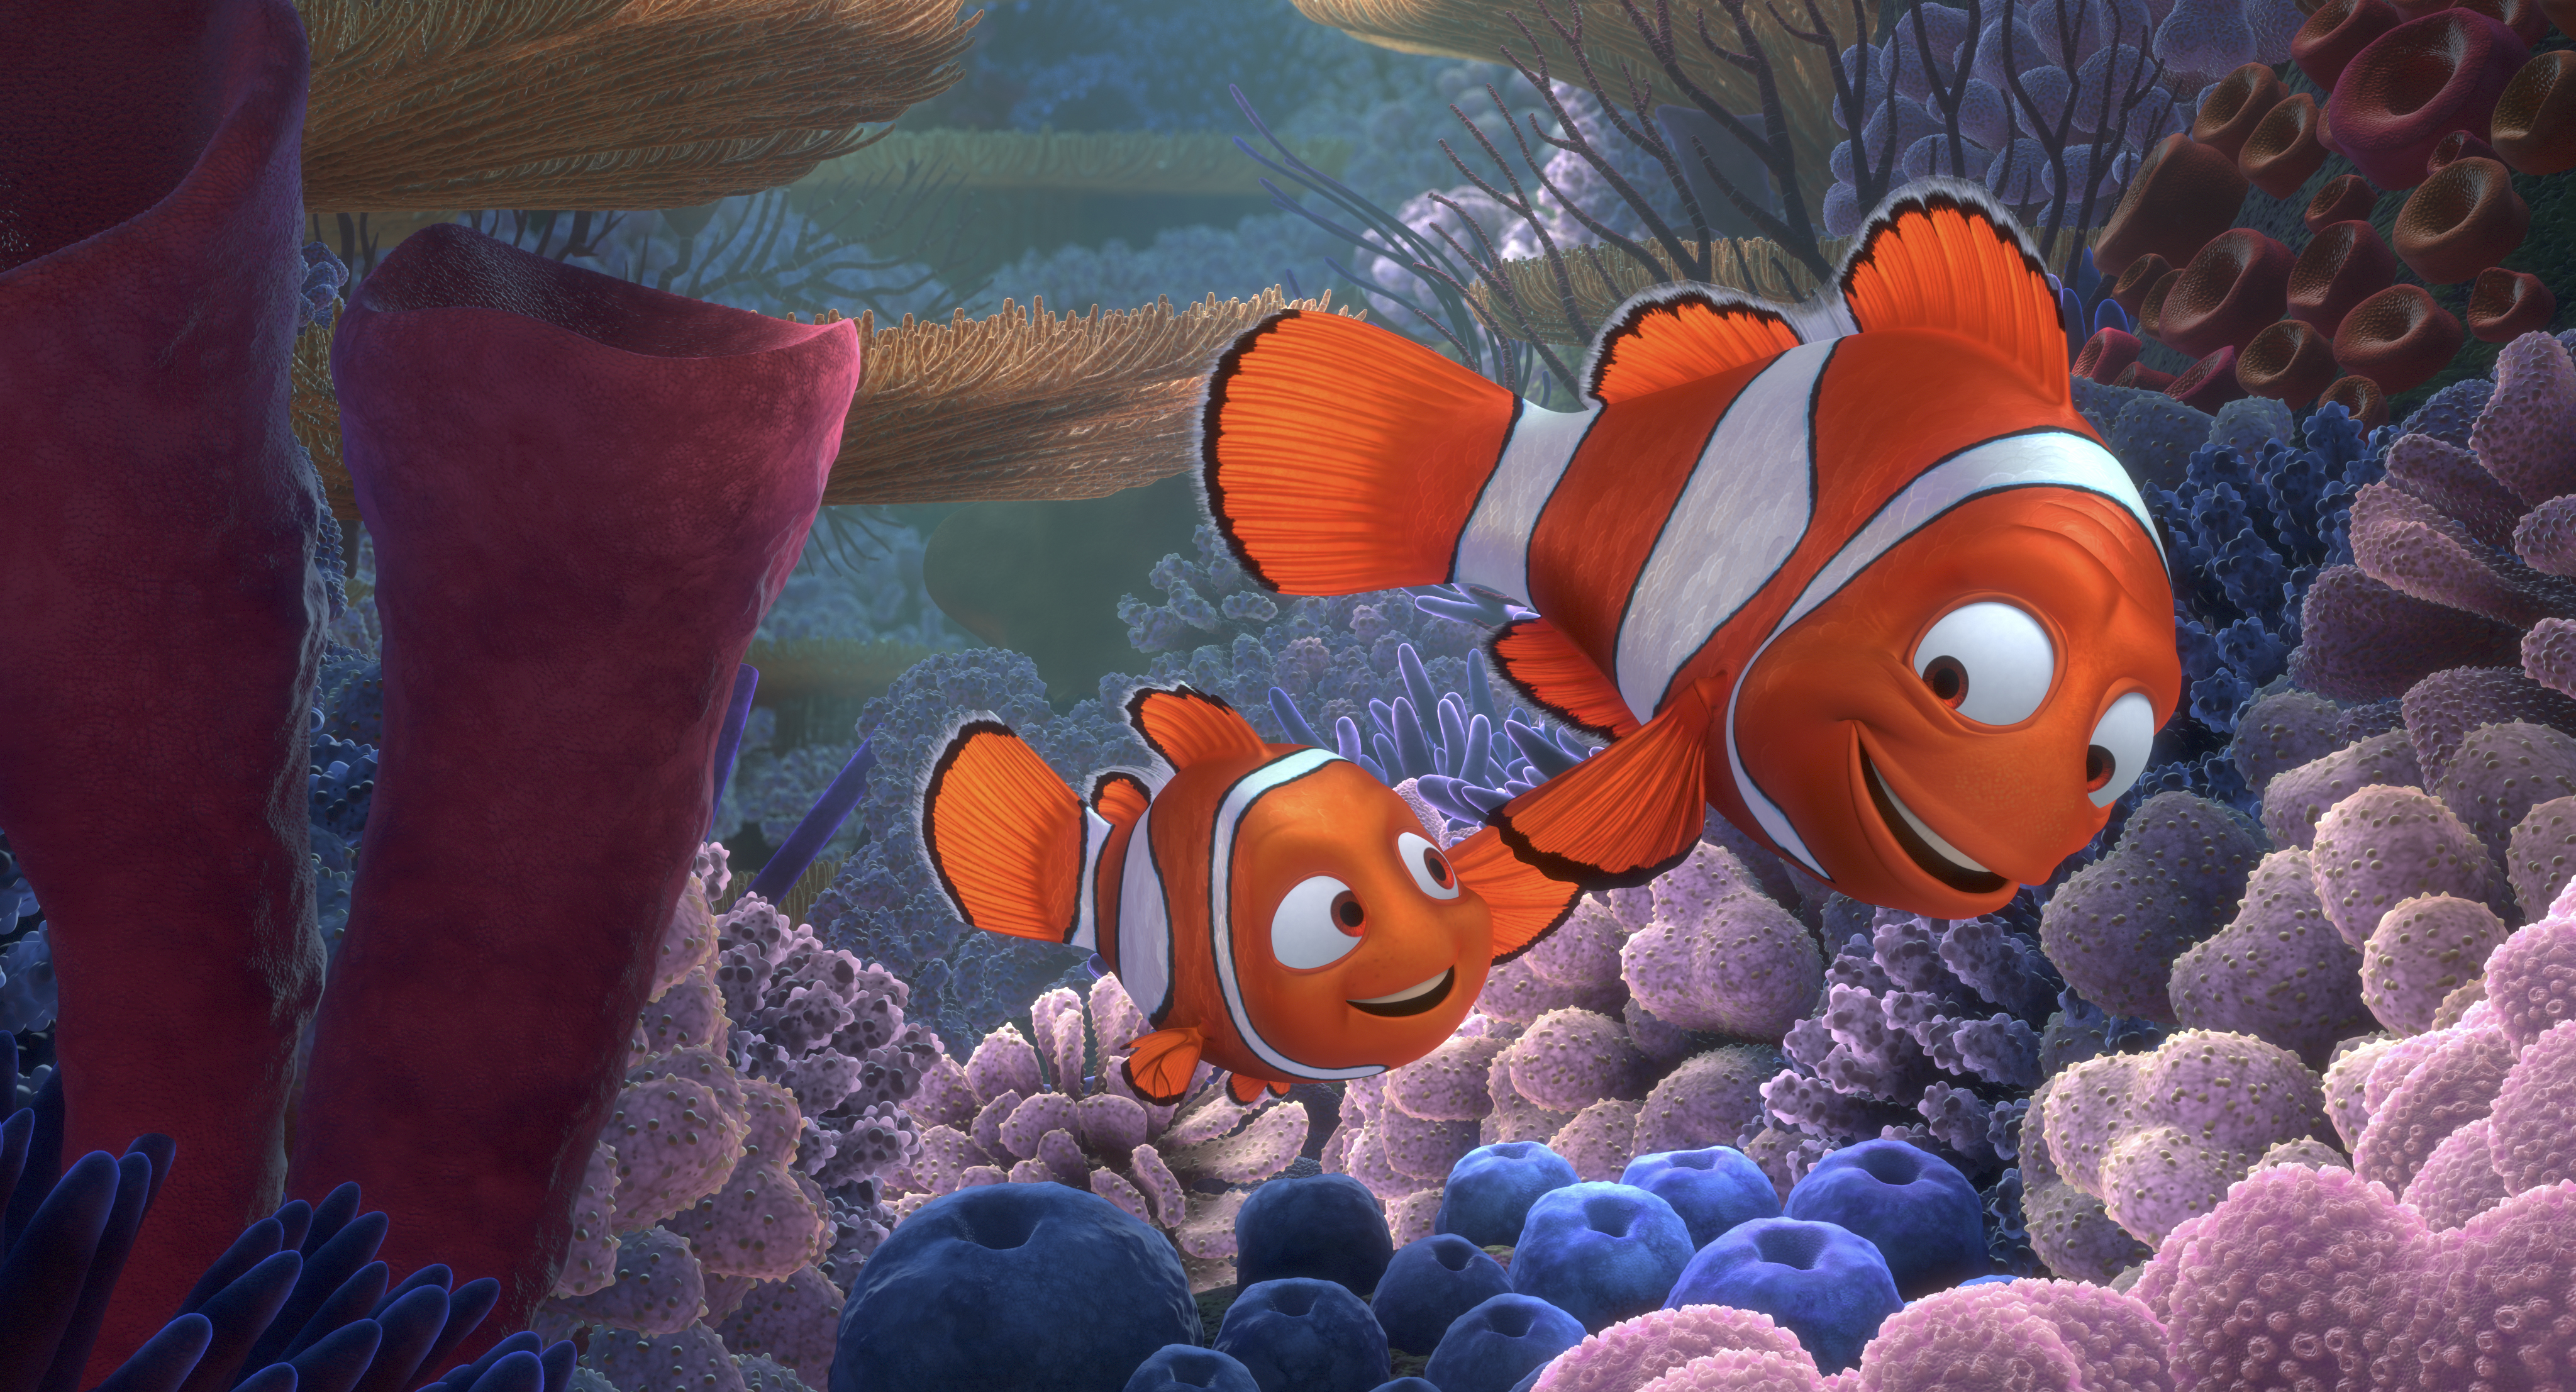 FINDING NEMO 3D C2012 Disney Pixar All Rights Reserved